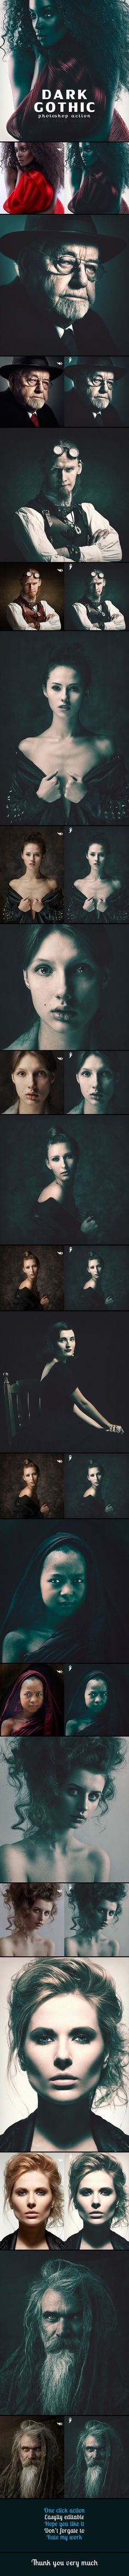 Dark Gothic Photoshop Action - Photo Effects Actions - Dark Gothic Photoshop Action Best Photoshop Actions, Effects Photoshop, Photoshop Design, Photoshop Tips, Photoshop Photography, Photography Tutorials, Gfx Design, Graphic Design, Fotografia Tutorial